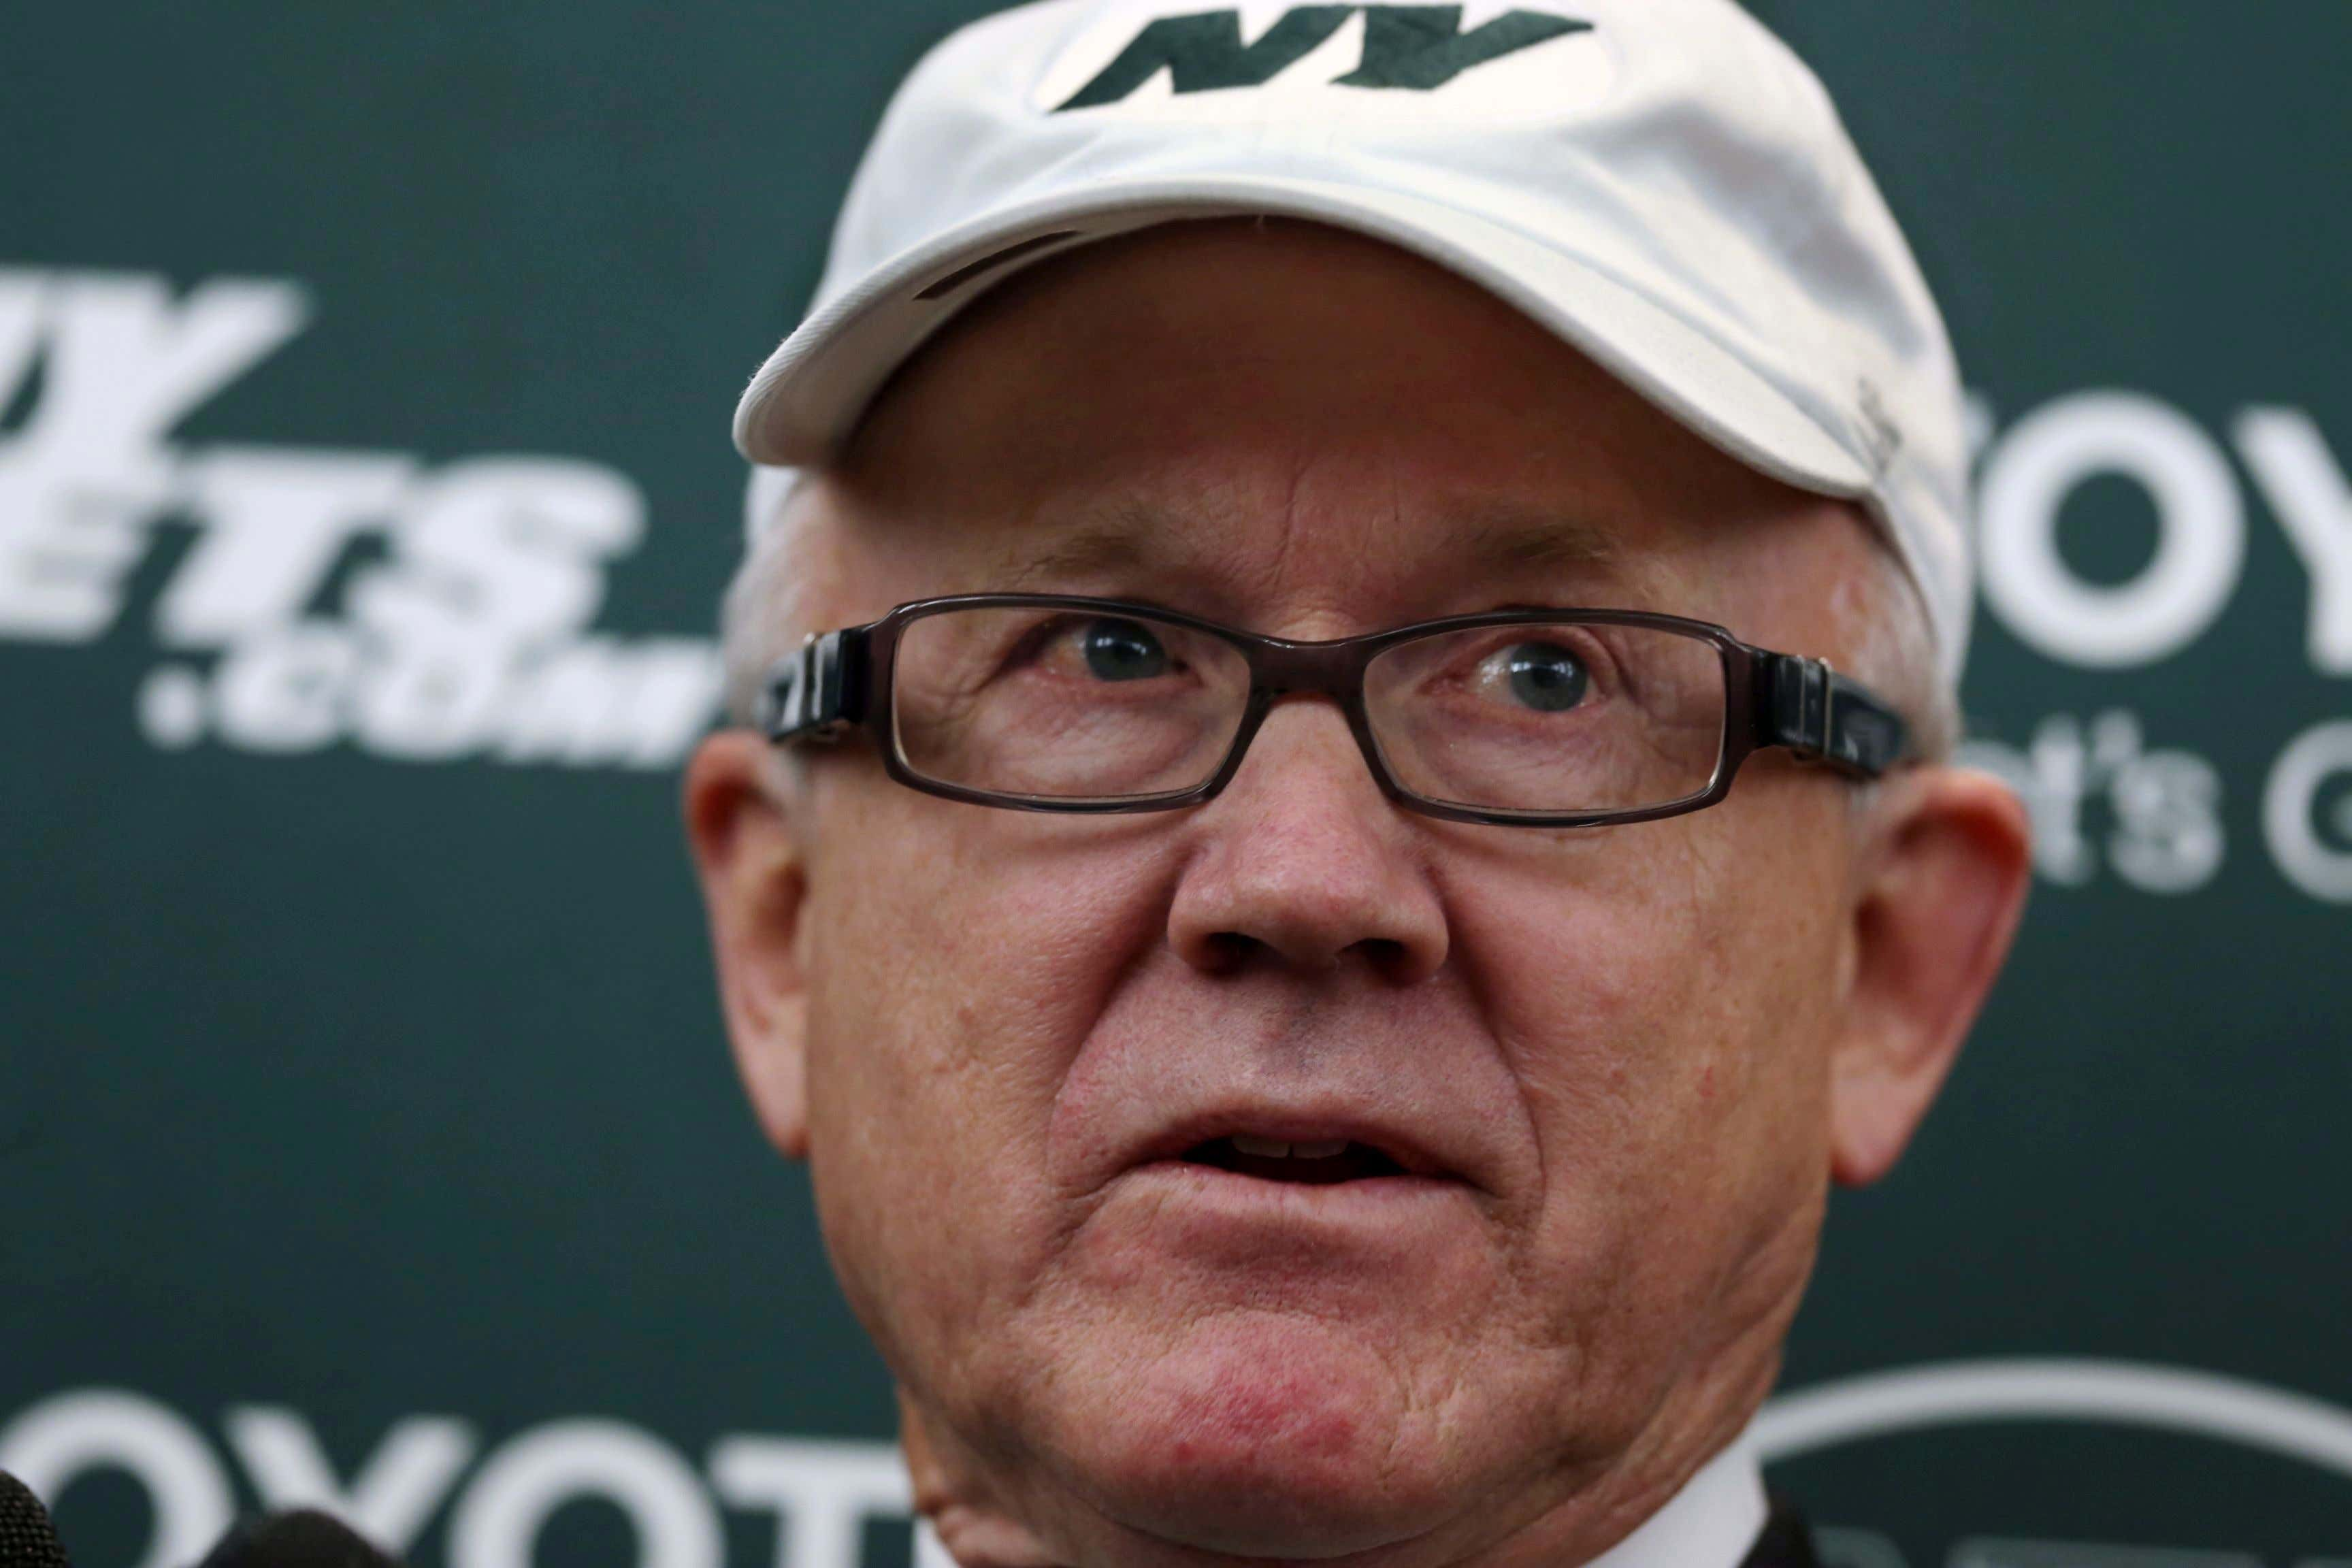 New York Jets owner Woody Johnson answers a question as he addresses the media at the team's training facility, in Florham Park, N.J. AP Photo/Mel Evans